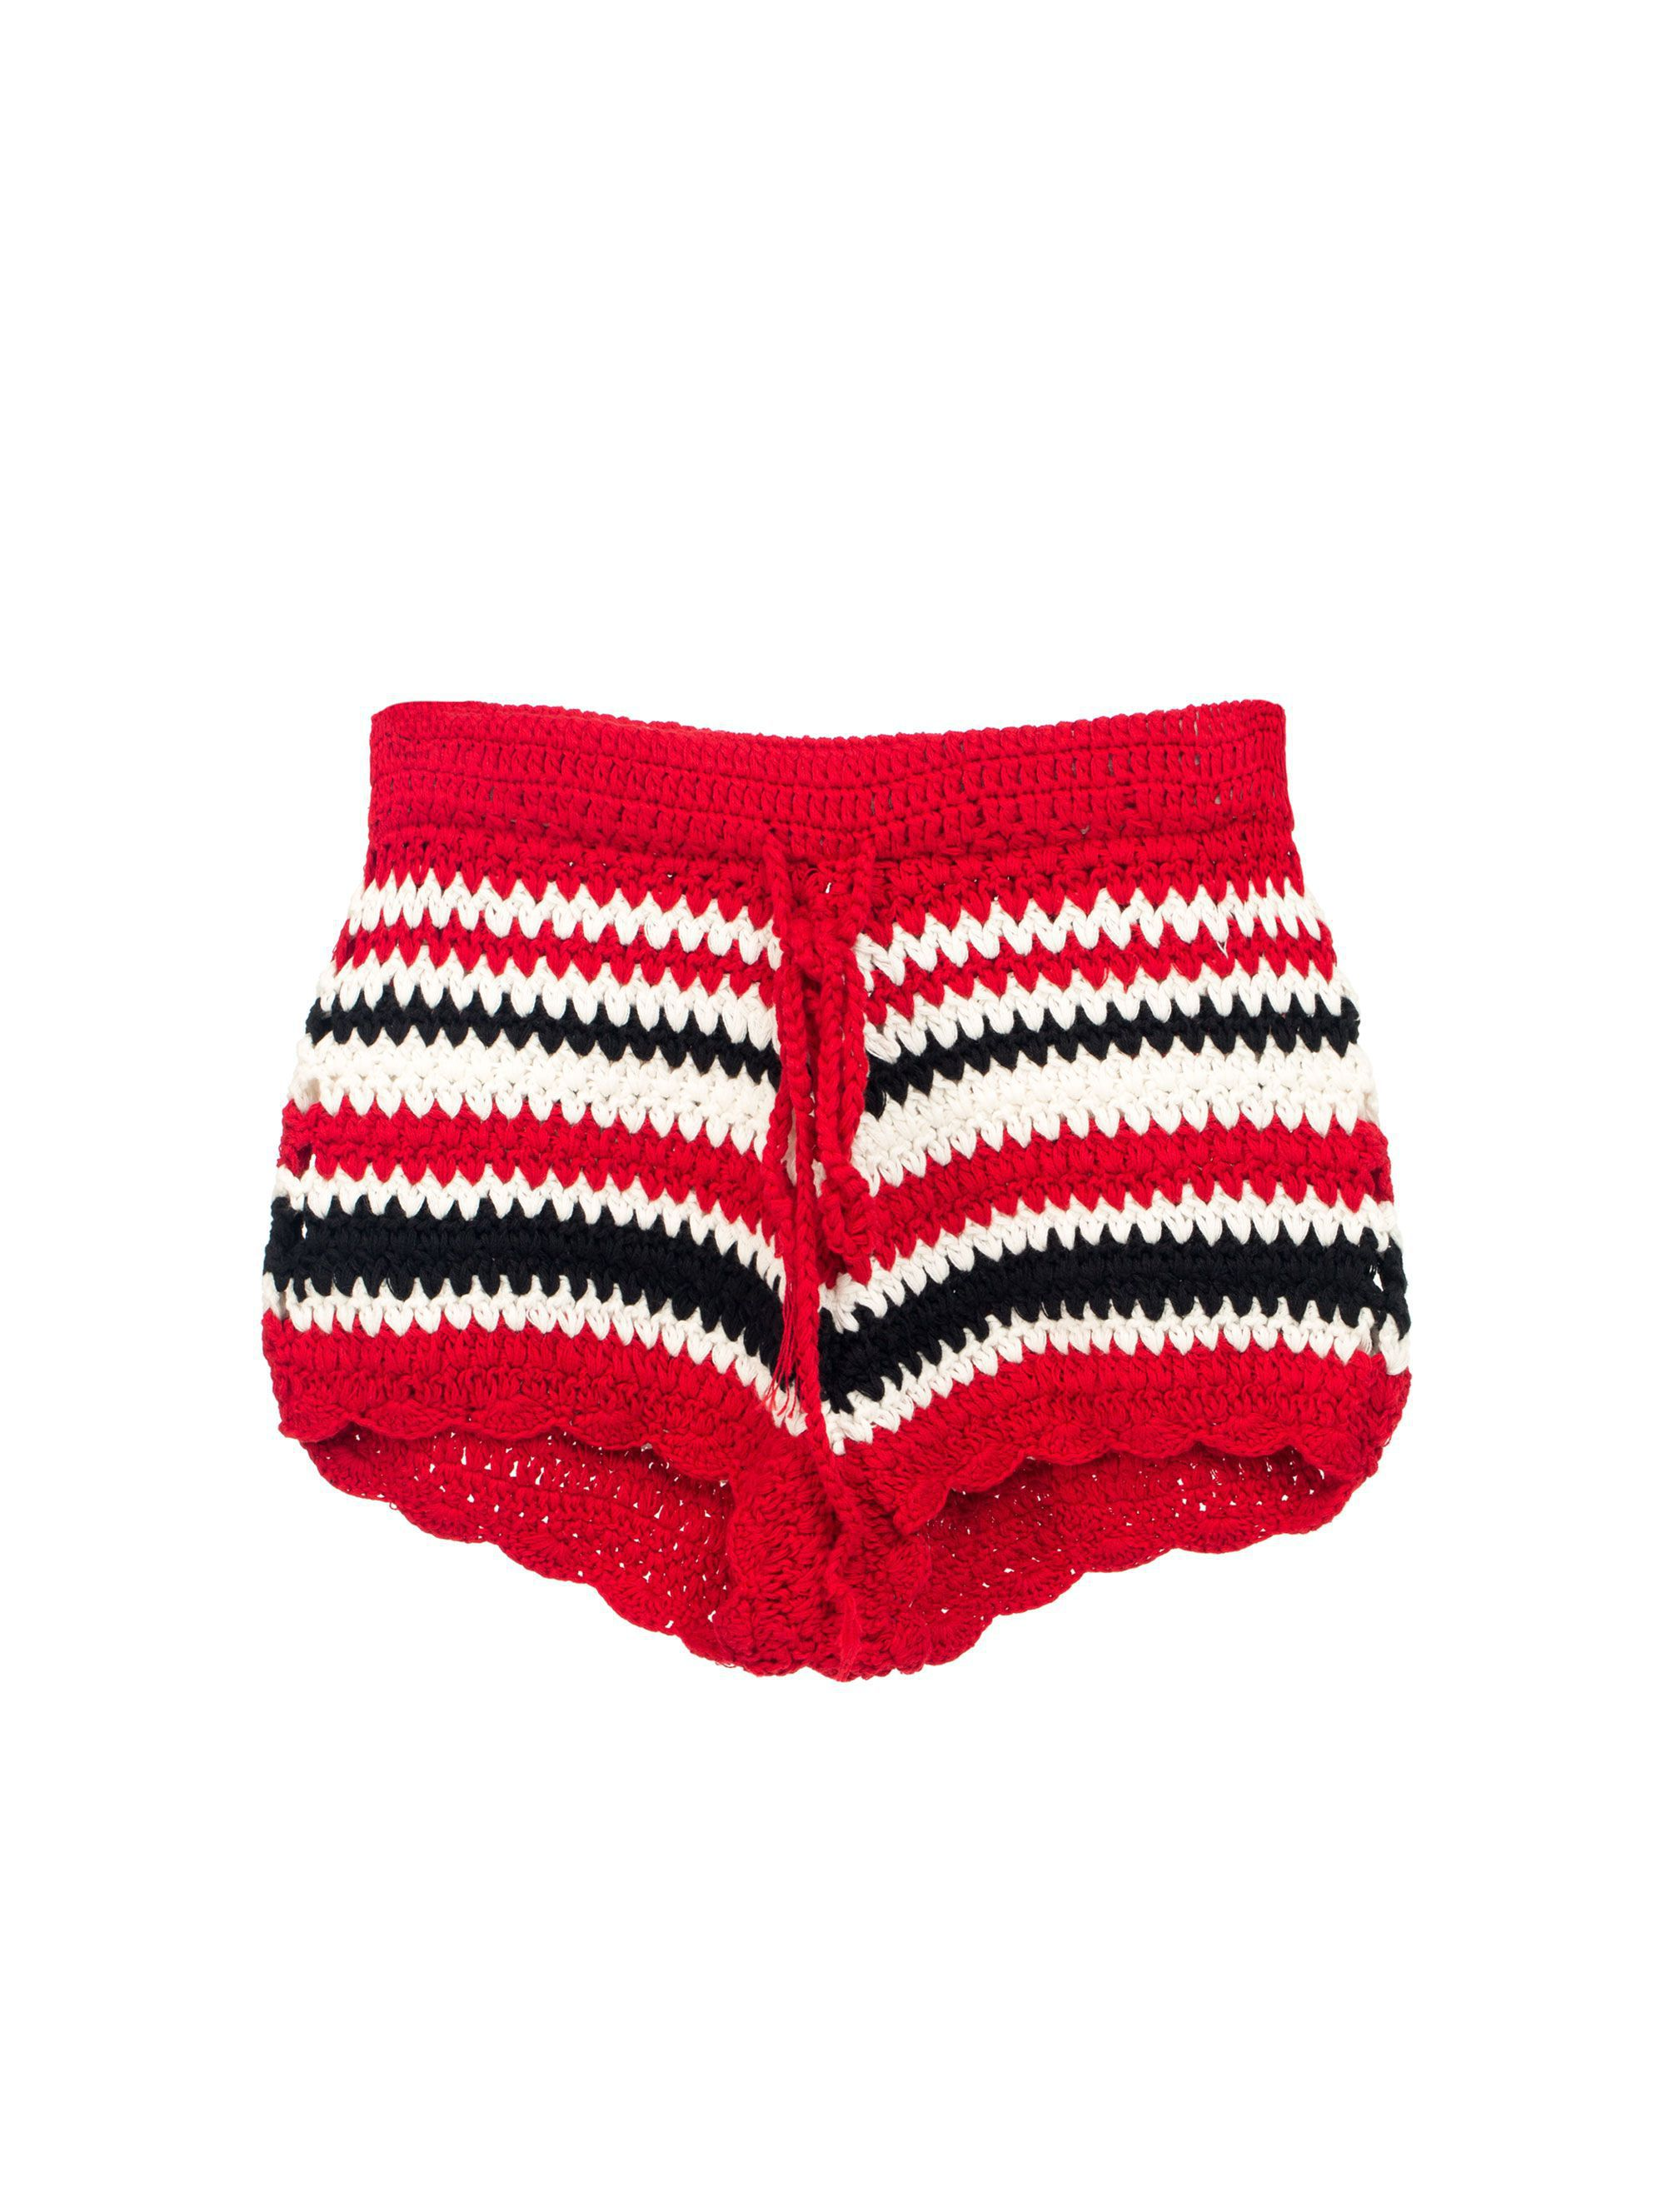 Echo 77 Bali Red Shorts